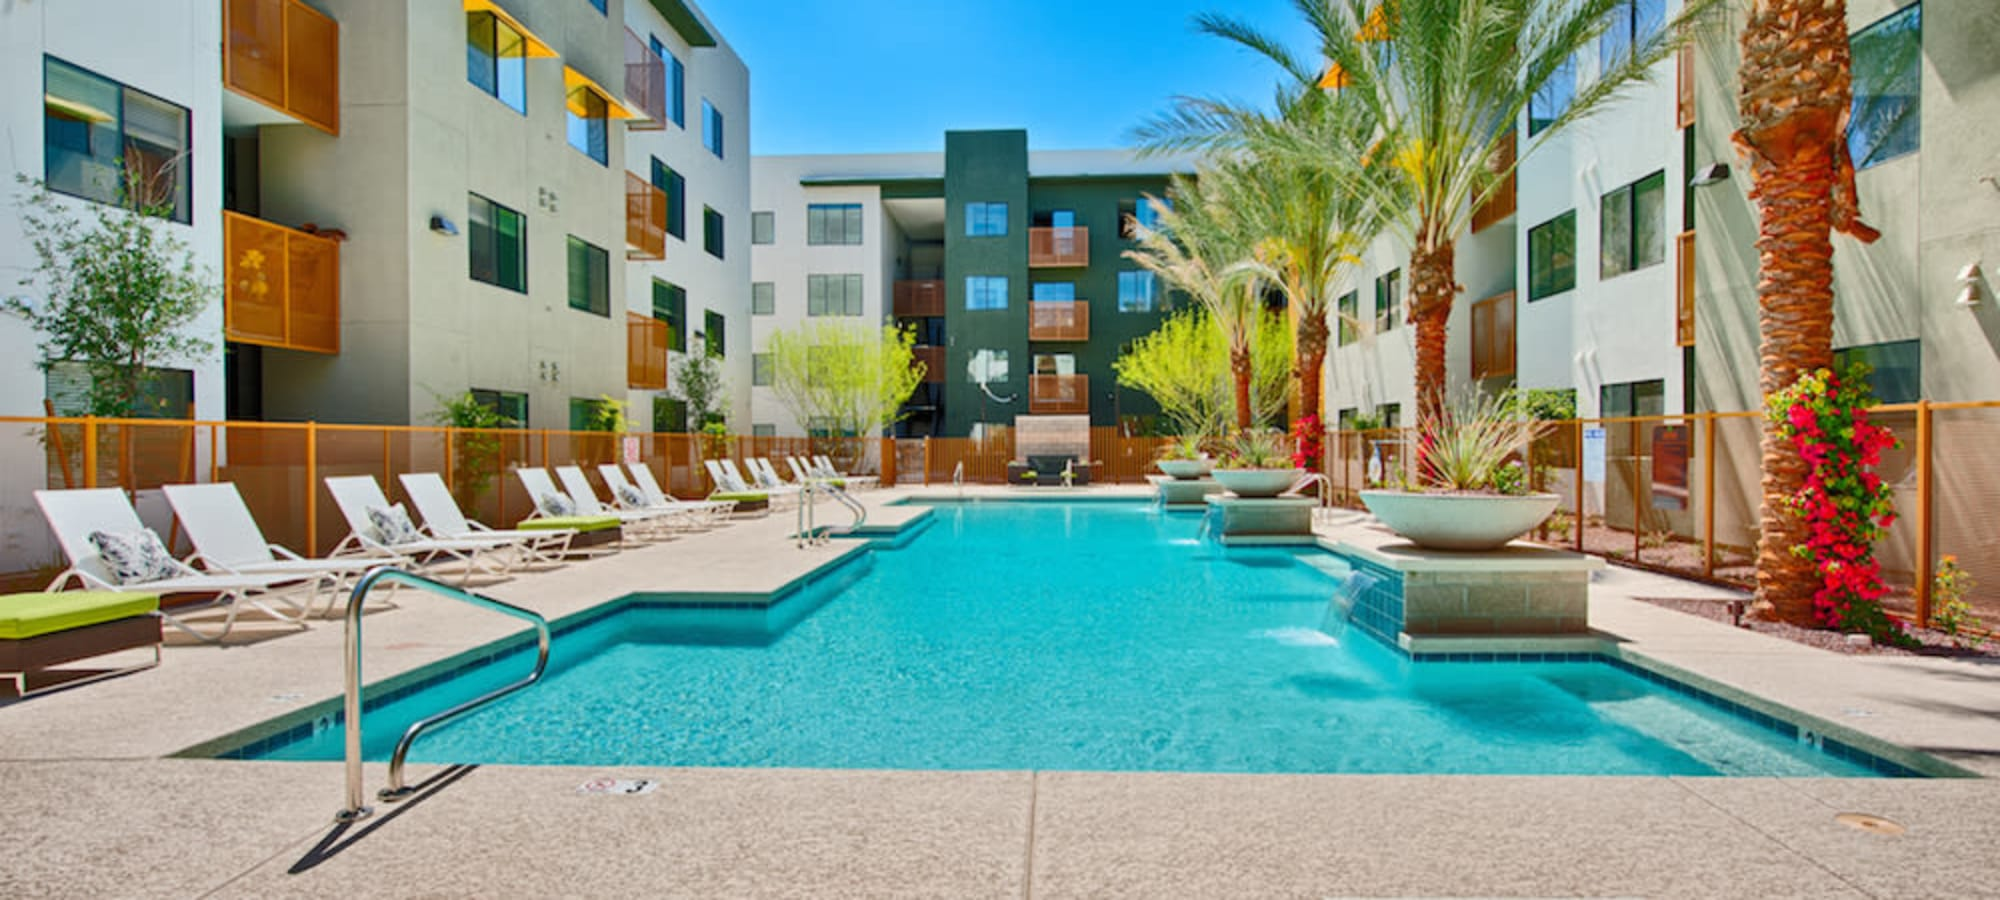 Swimming pool with lounge chairs at Cactus Forty-2 in Phoenix, Arizona